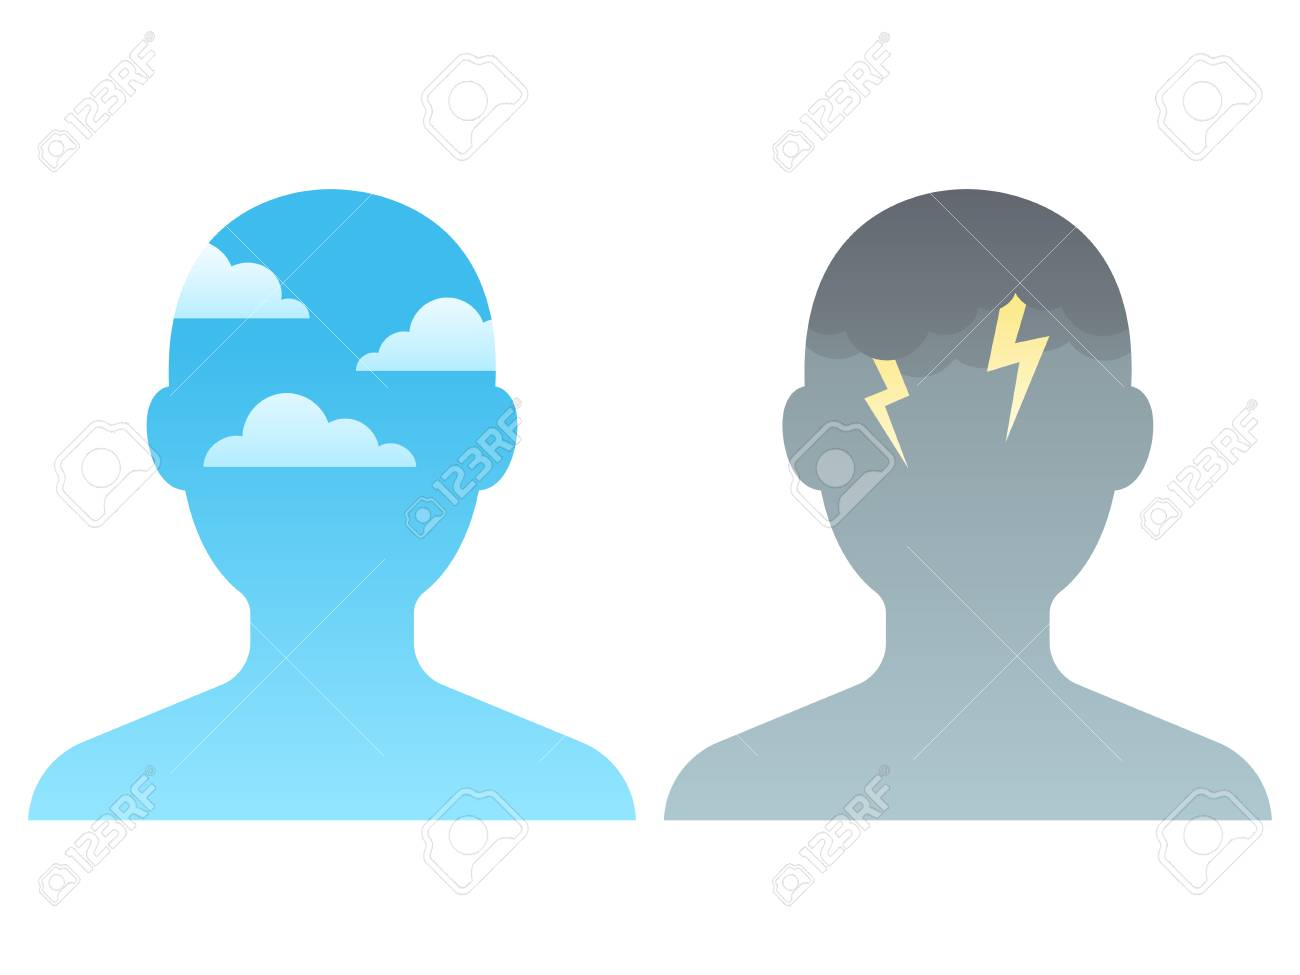 Head silhouette with blue sky and dark storm clouds. Mindfulness and stress management concept, vector illustration. - 91728844